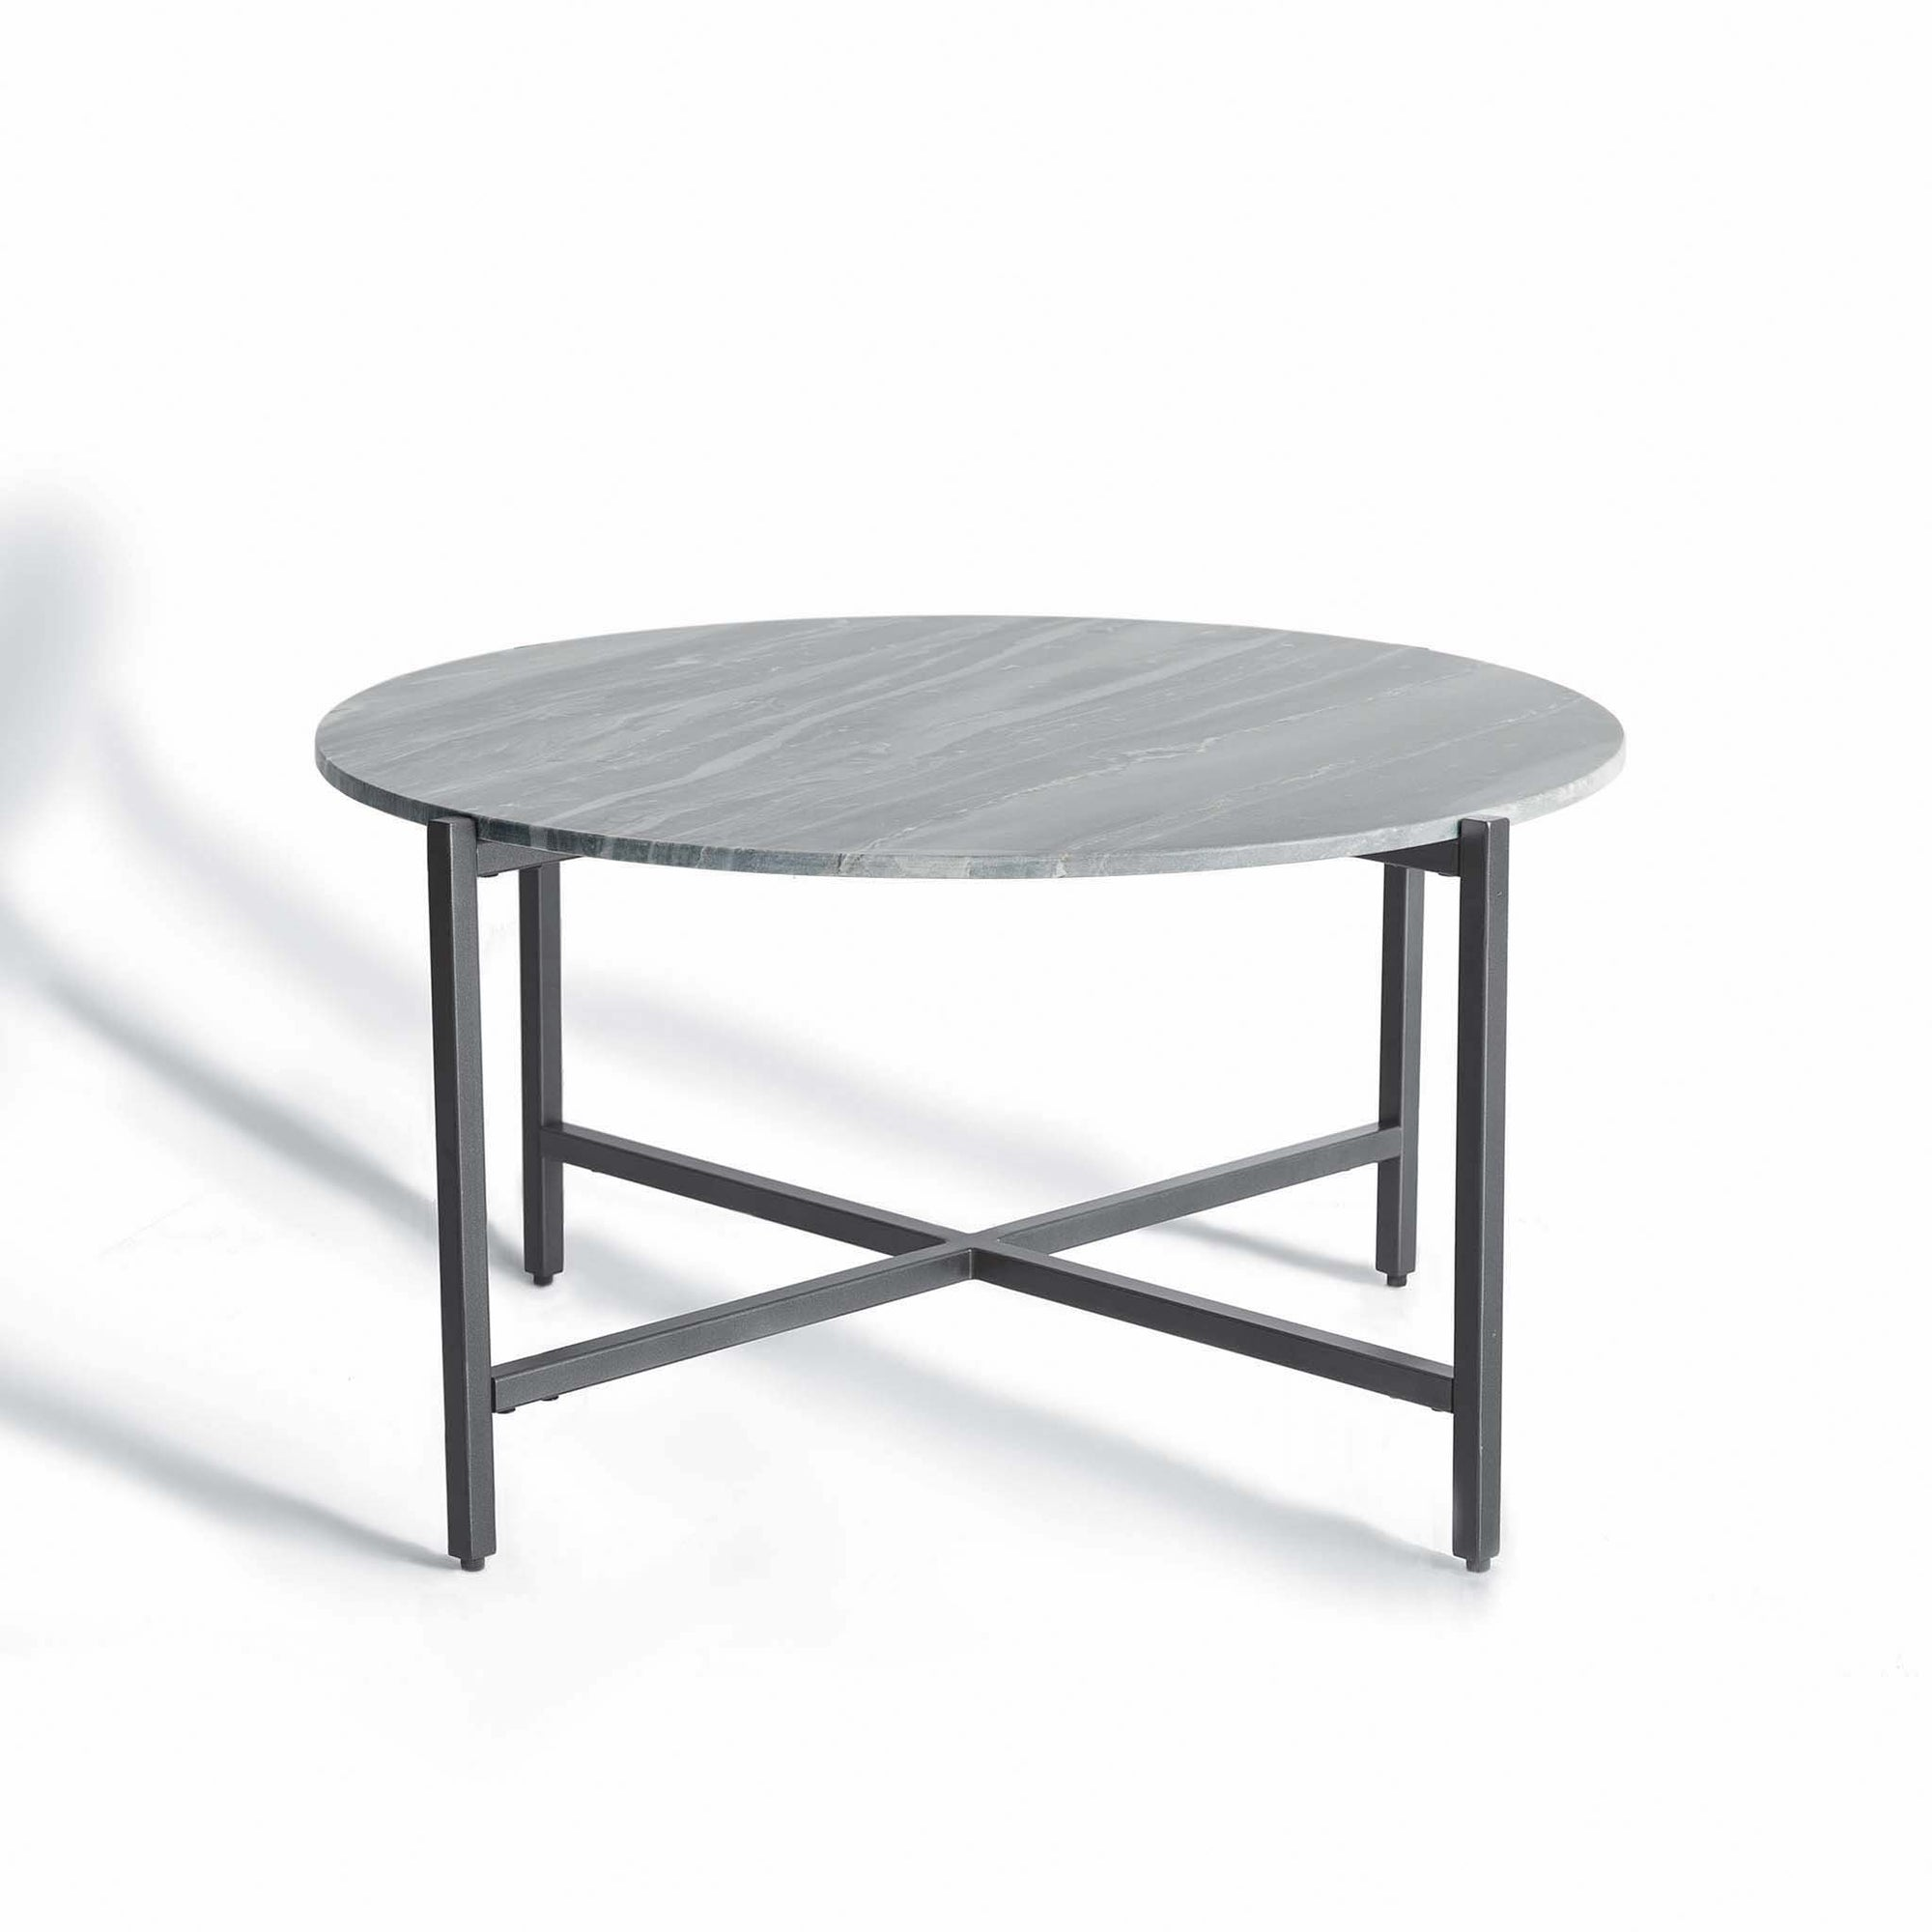 Kandla Grey Round Marble Coffee Table with Grey Base by Roseland Furniture